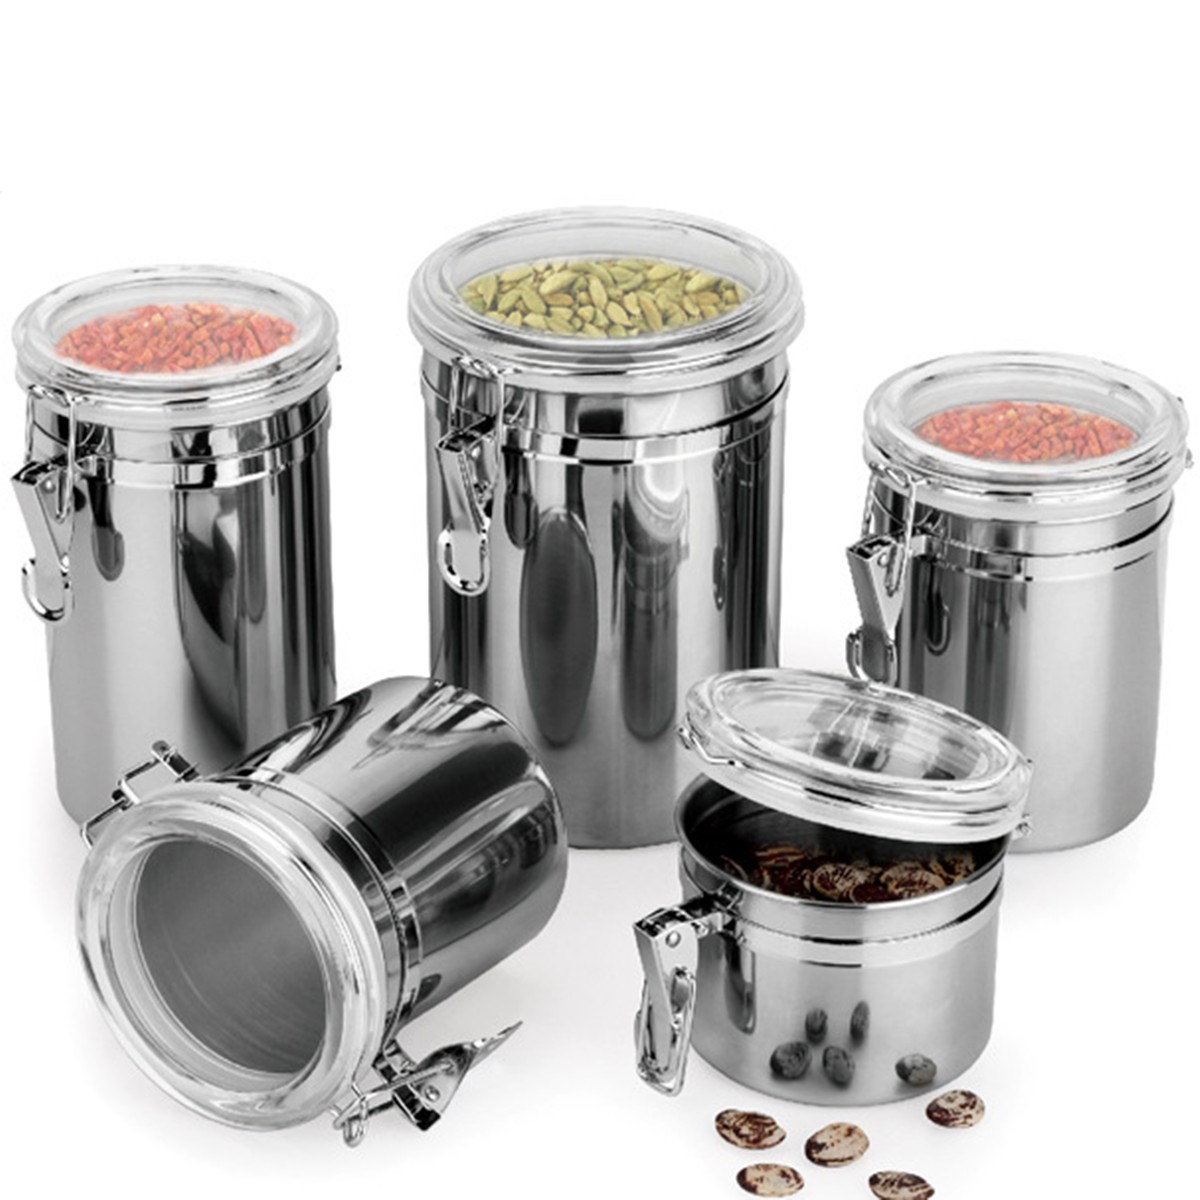 Metal Storage Food Bottles Sugar Tea Coffee Beans